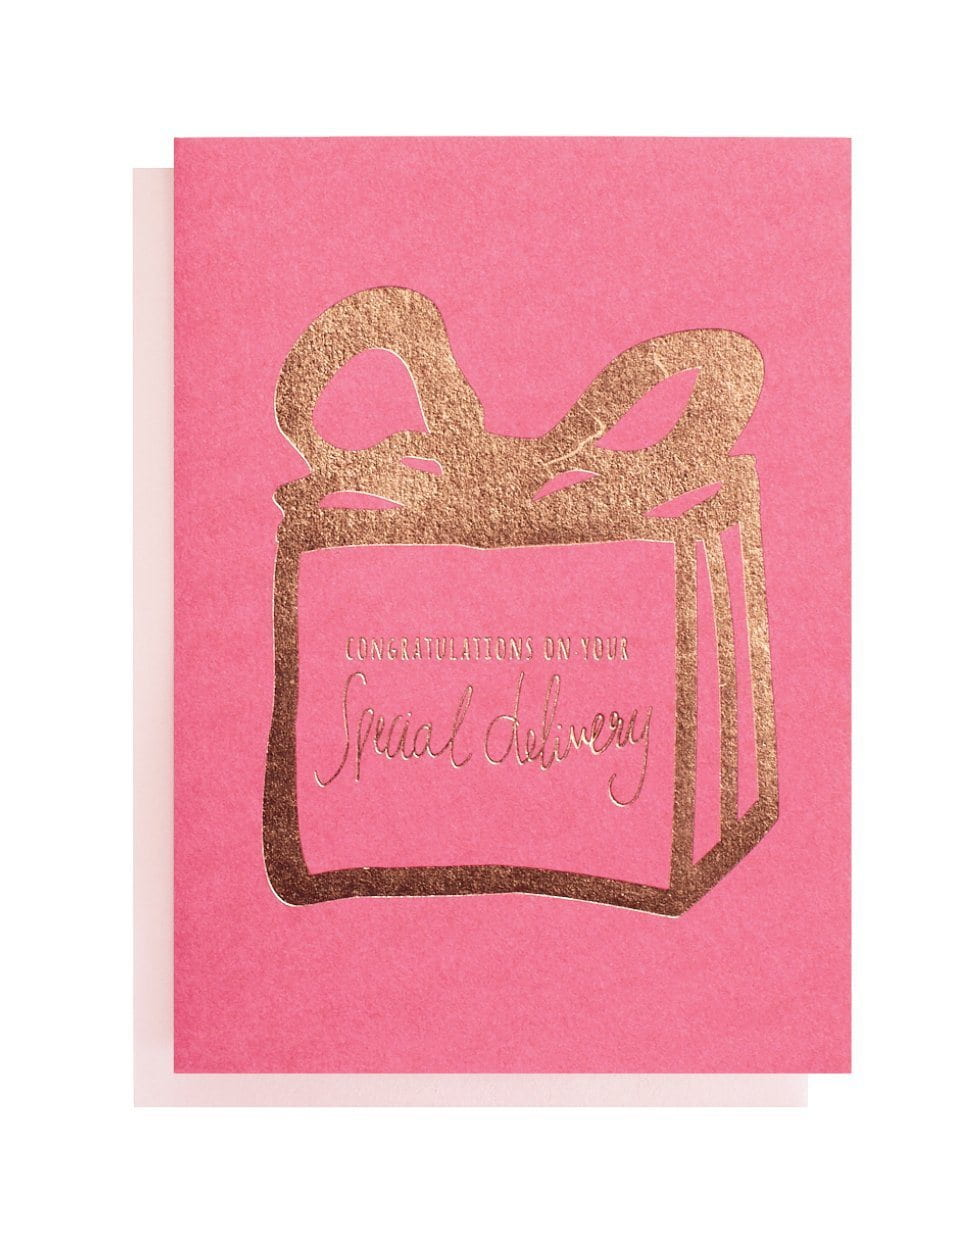 Special Delivery Foiled Greeting Card